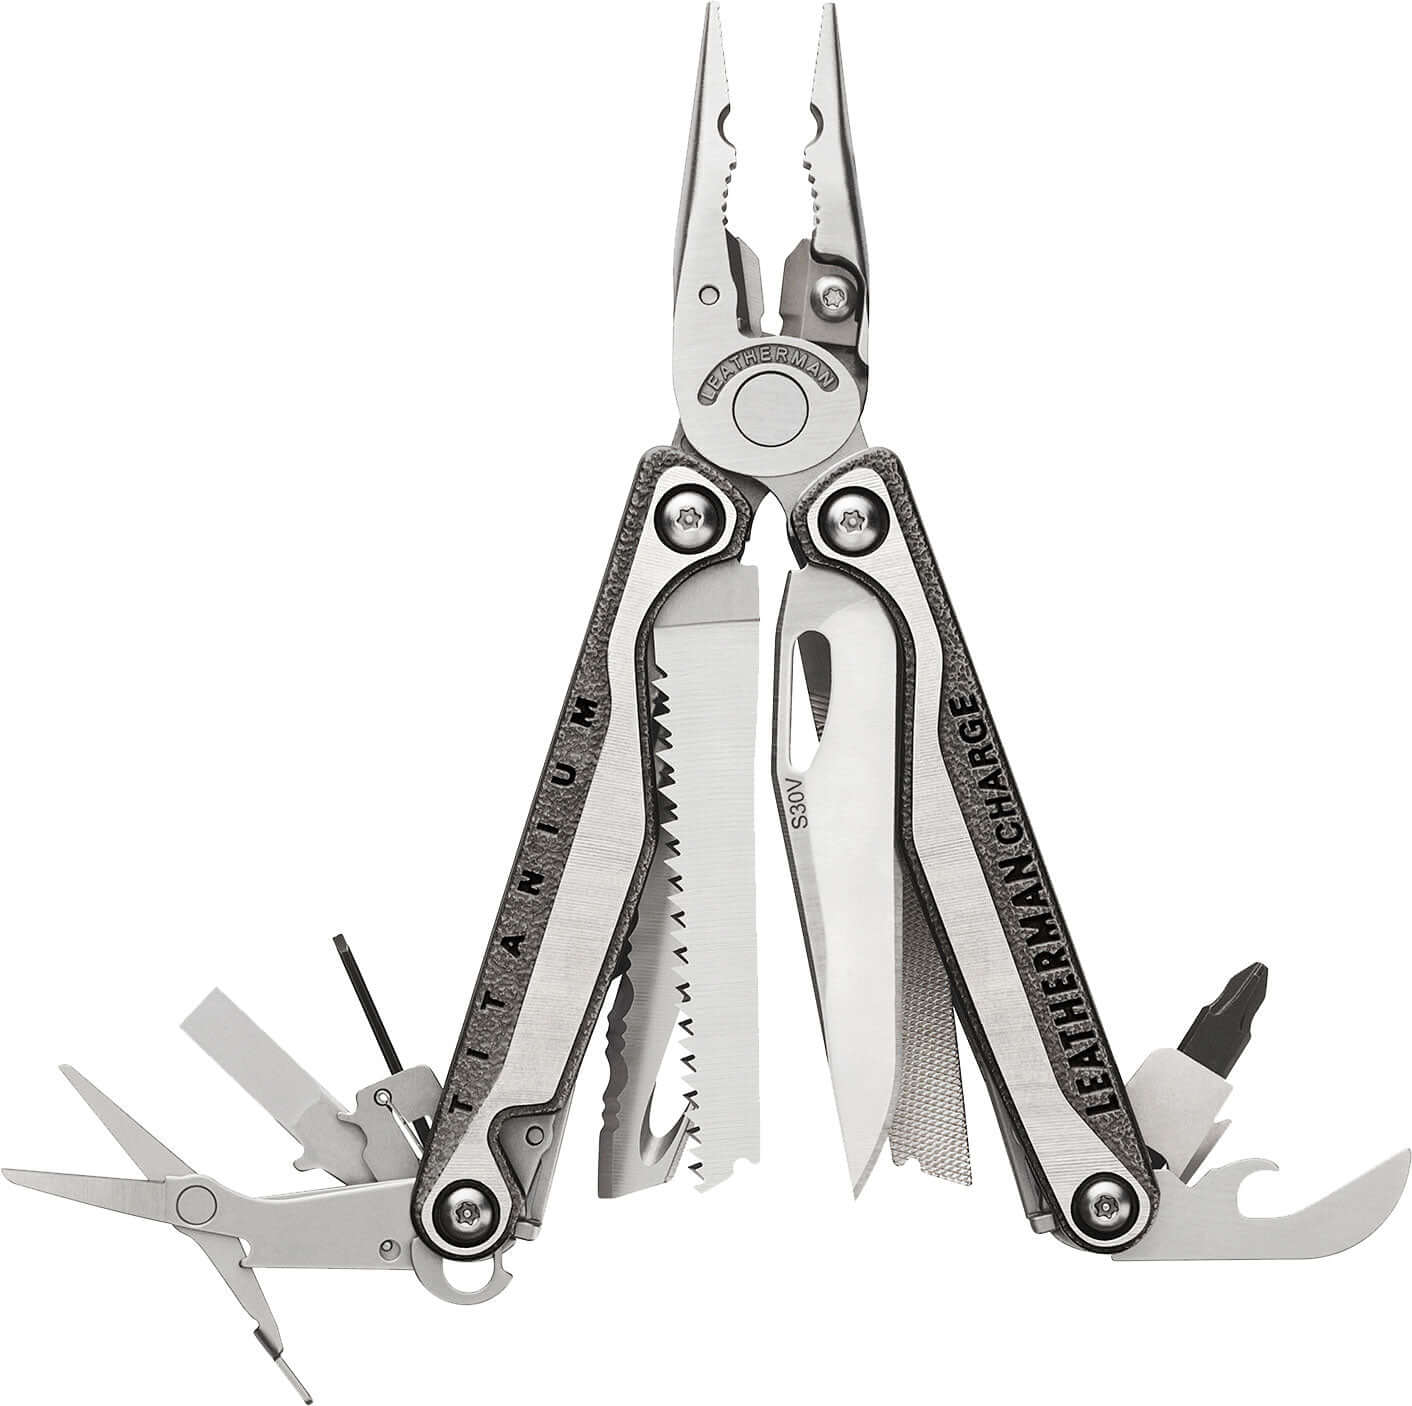 Leatherman Charge®+ TTi Stainless Steel Multi-Tool W/ Nylon Sheath